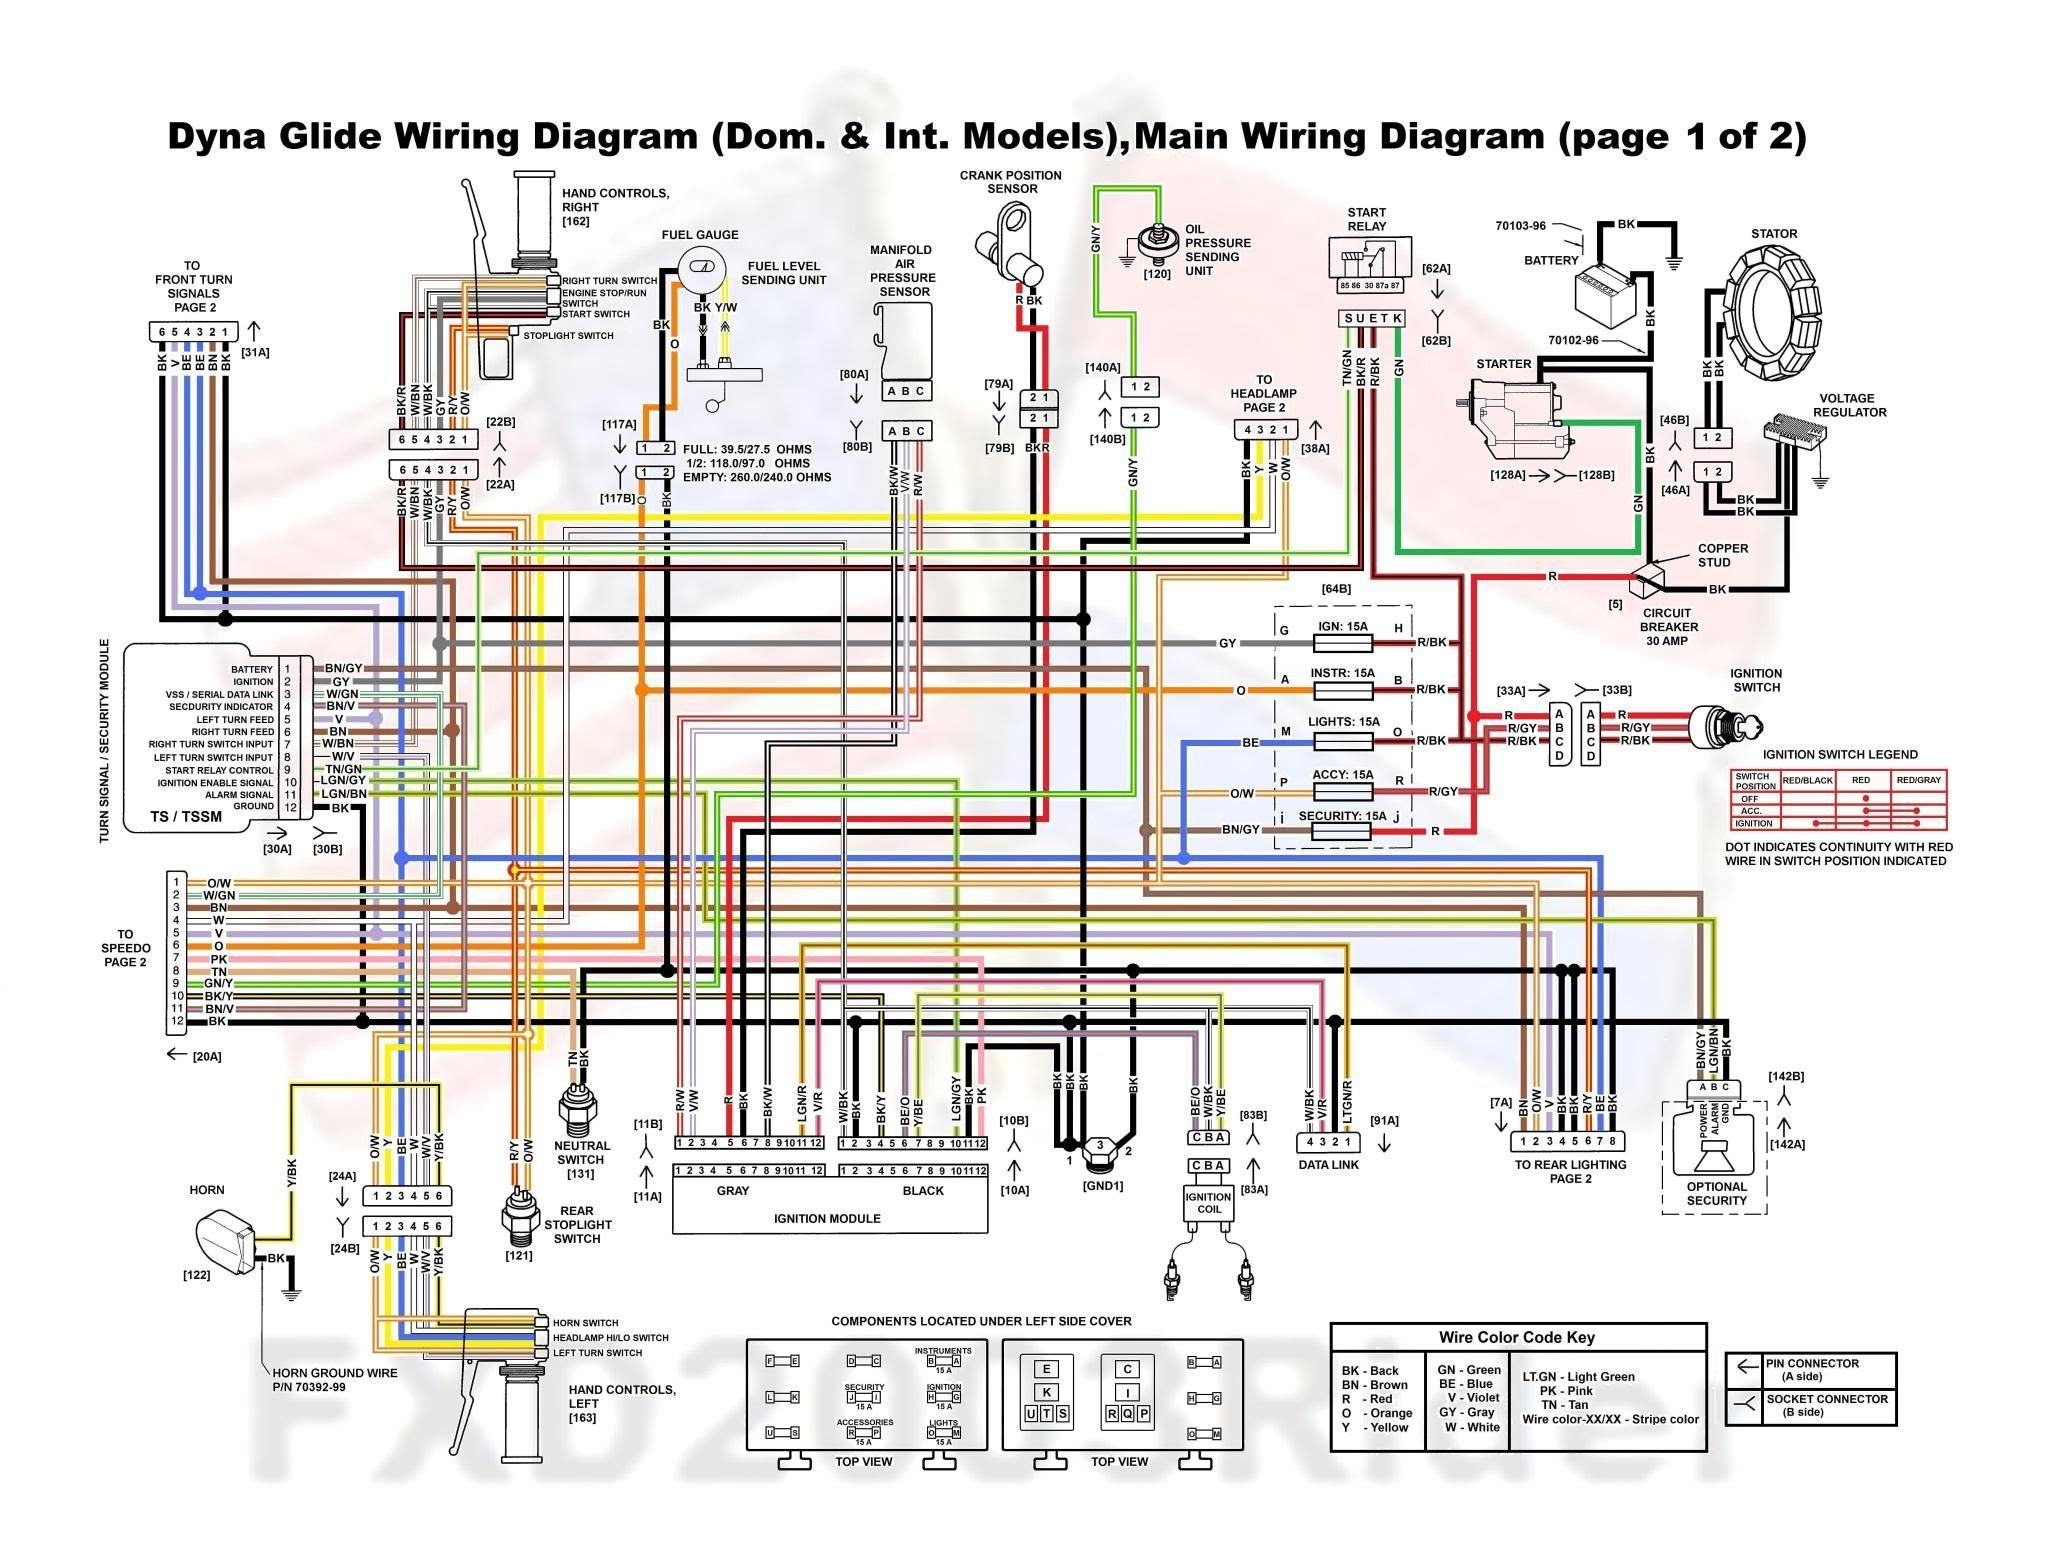 Basic Wiring Diagram For Harley Davidson With Images Harley